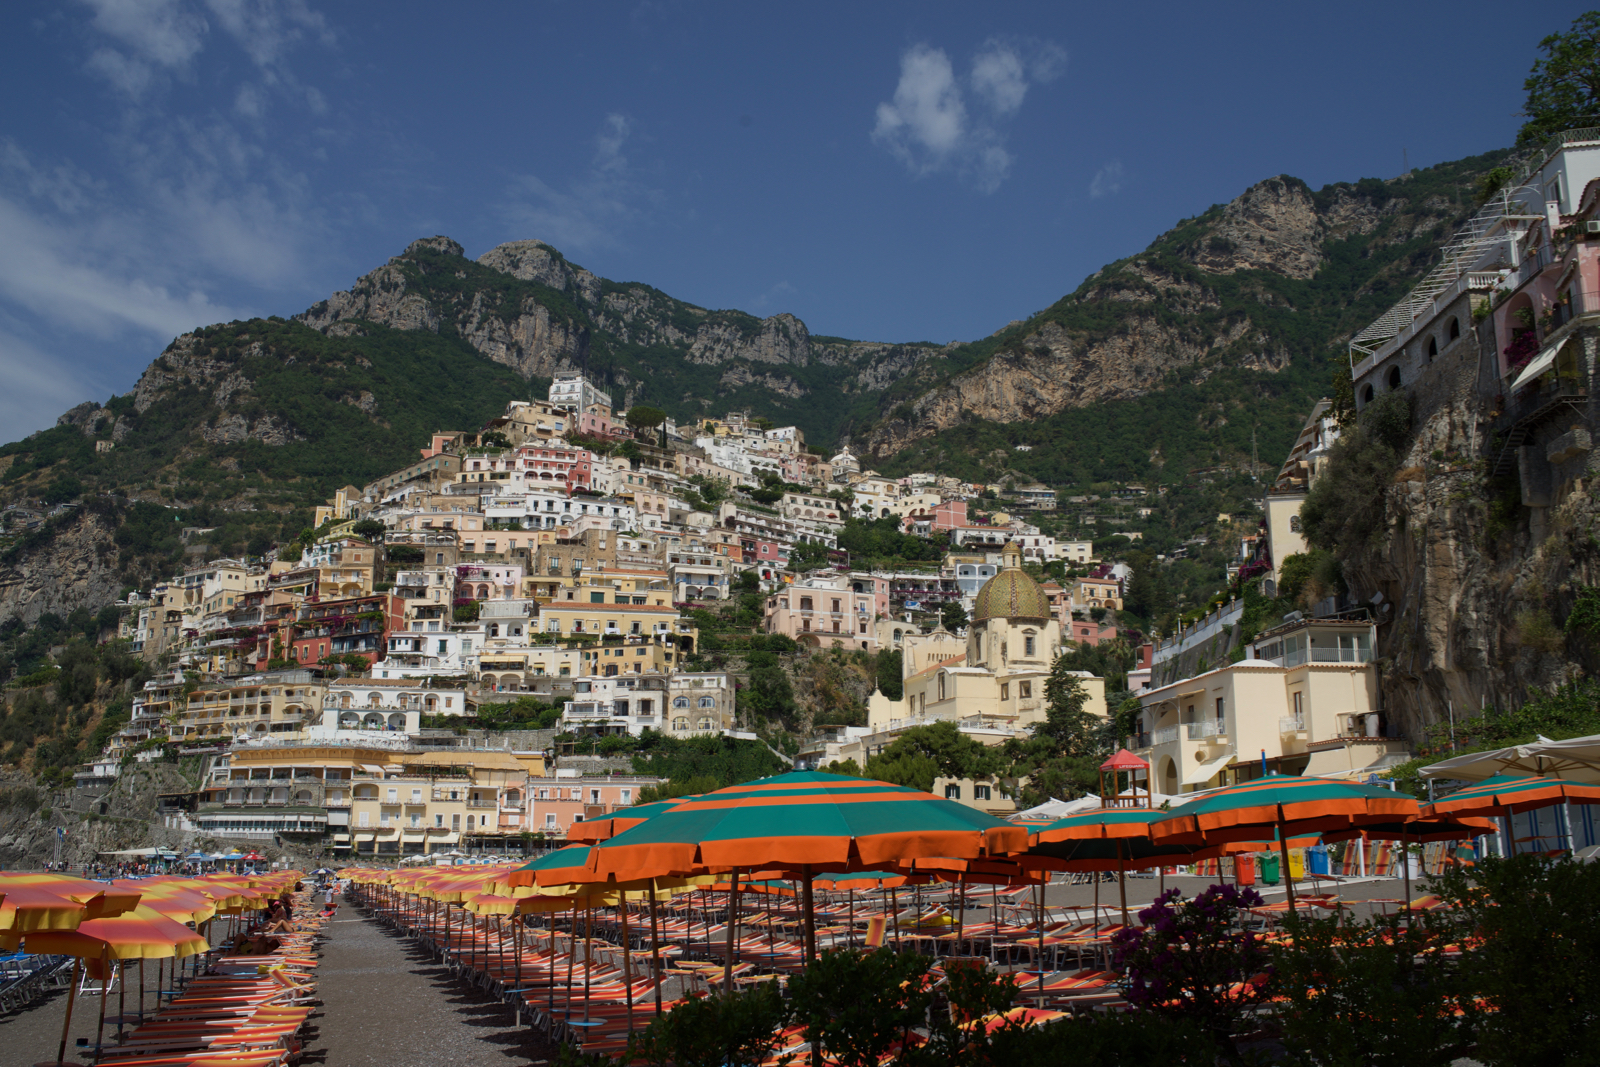 Positano Beach club, Colorful Positano, Must see in Italy, What to do in Amalfi coast and Positano